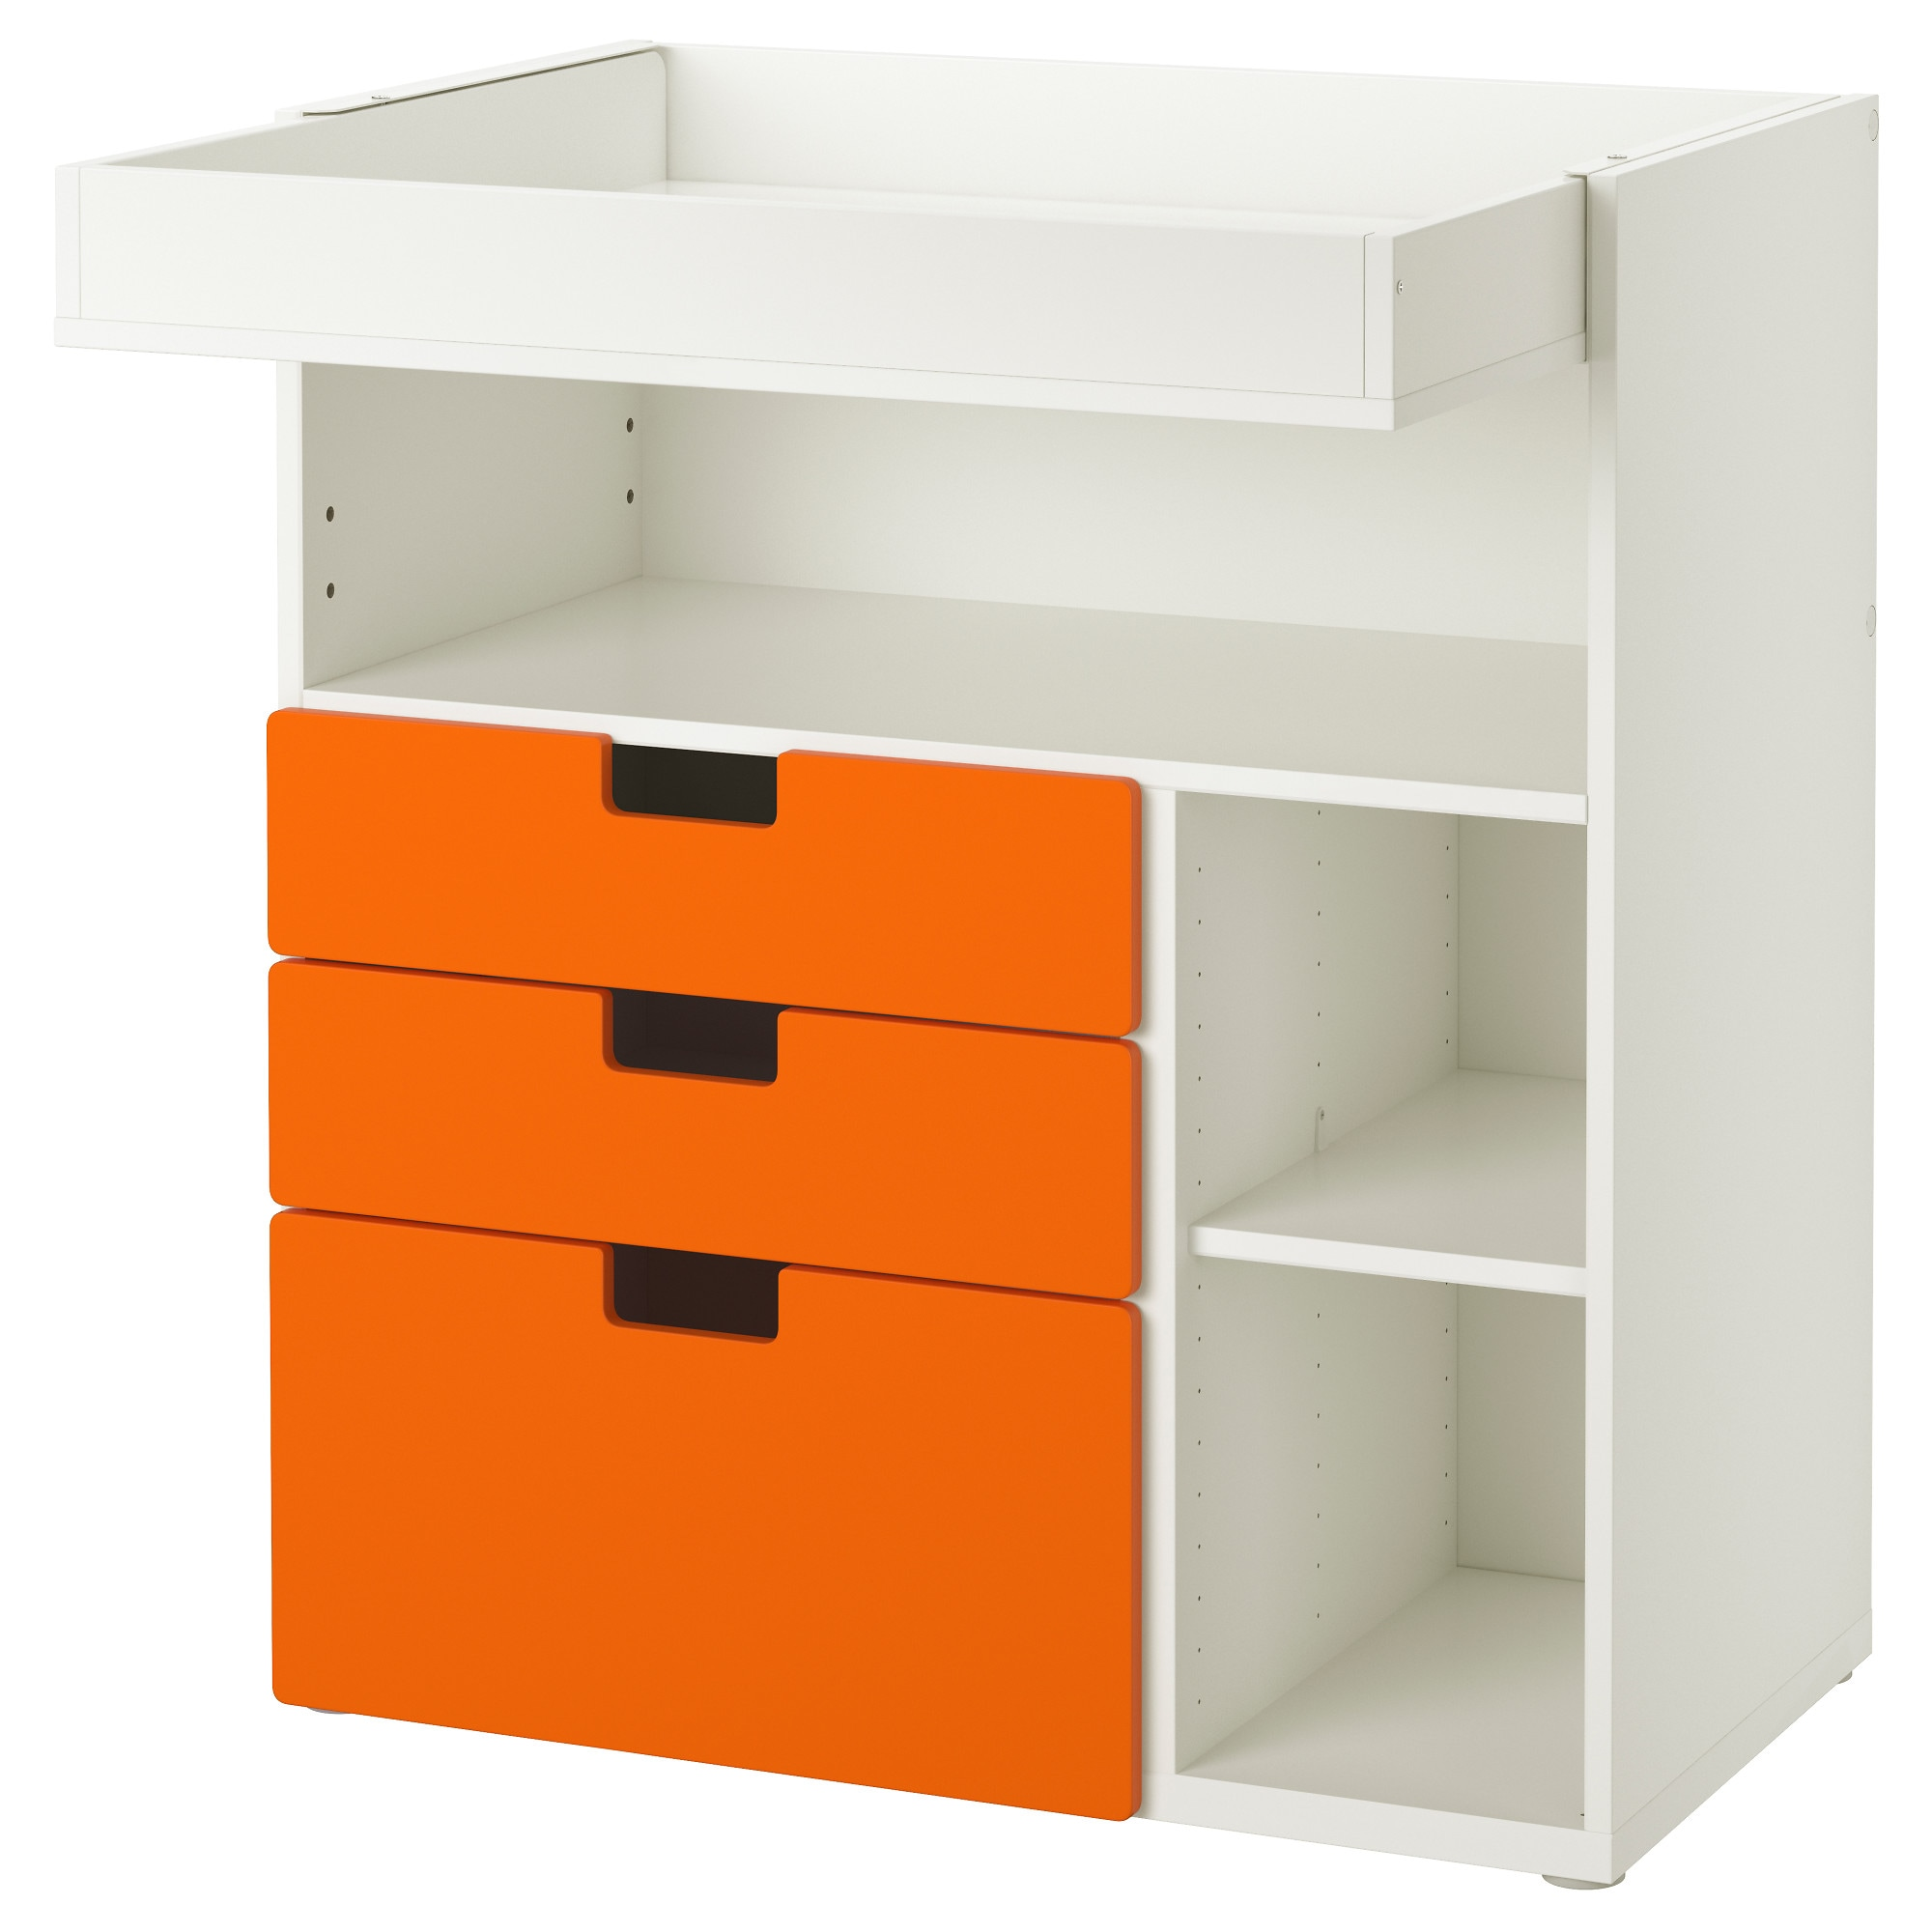 baby changing tables  ikea - stuva changing table with  drawers white orange width